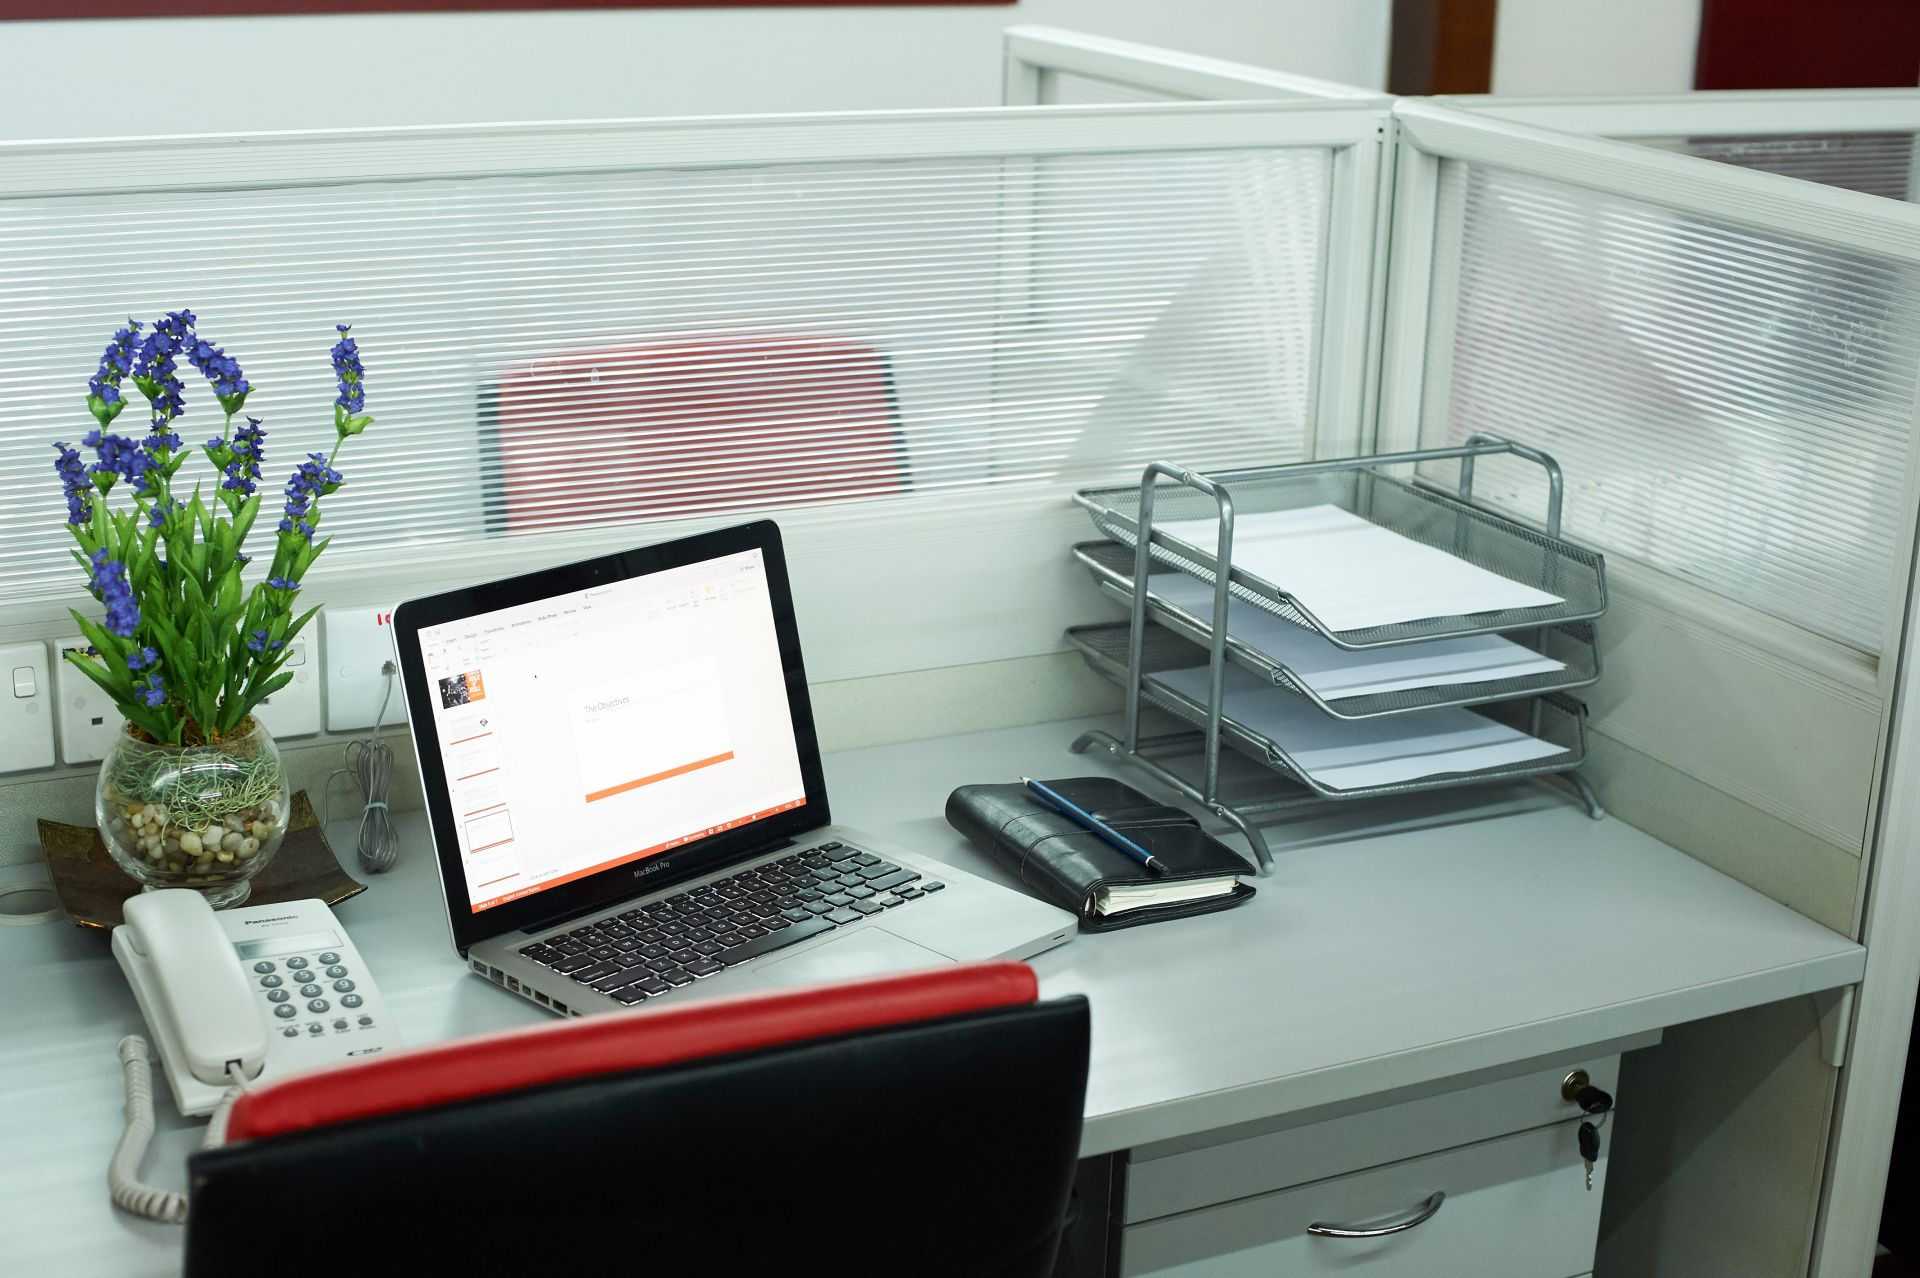 The Office by DZB, Shah Alam